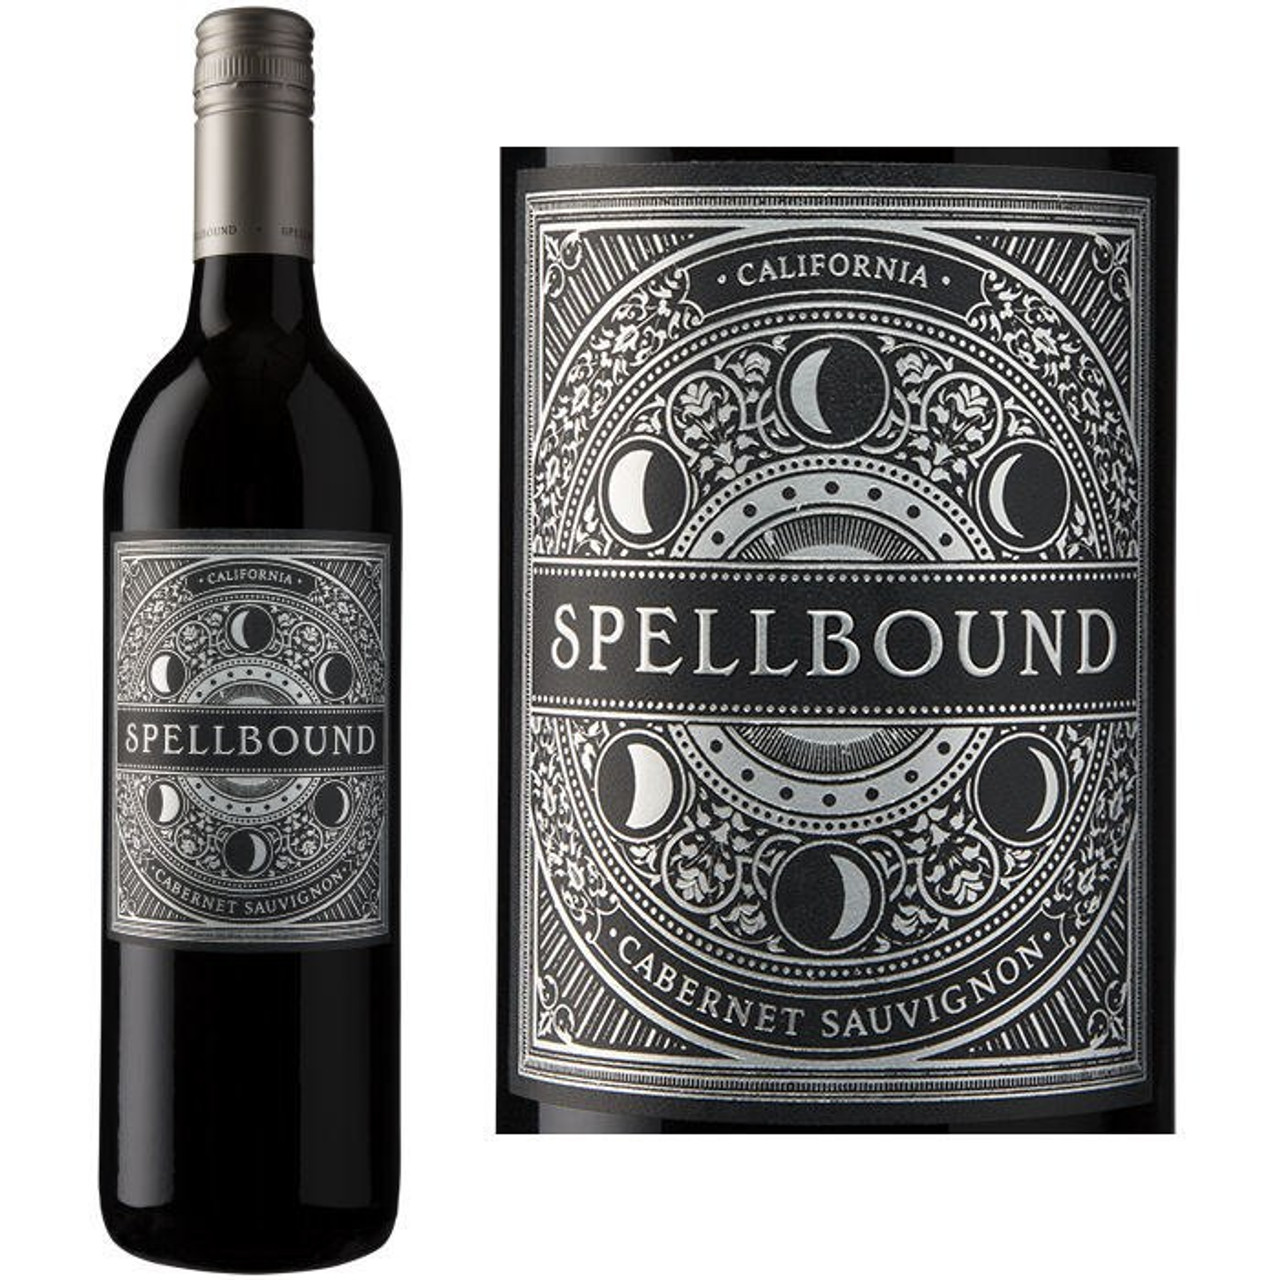 Spellbound California Cabernet 2016